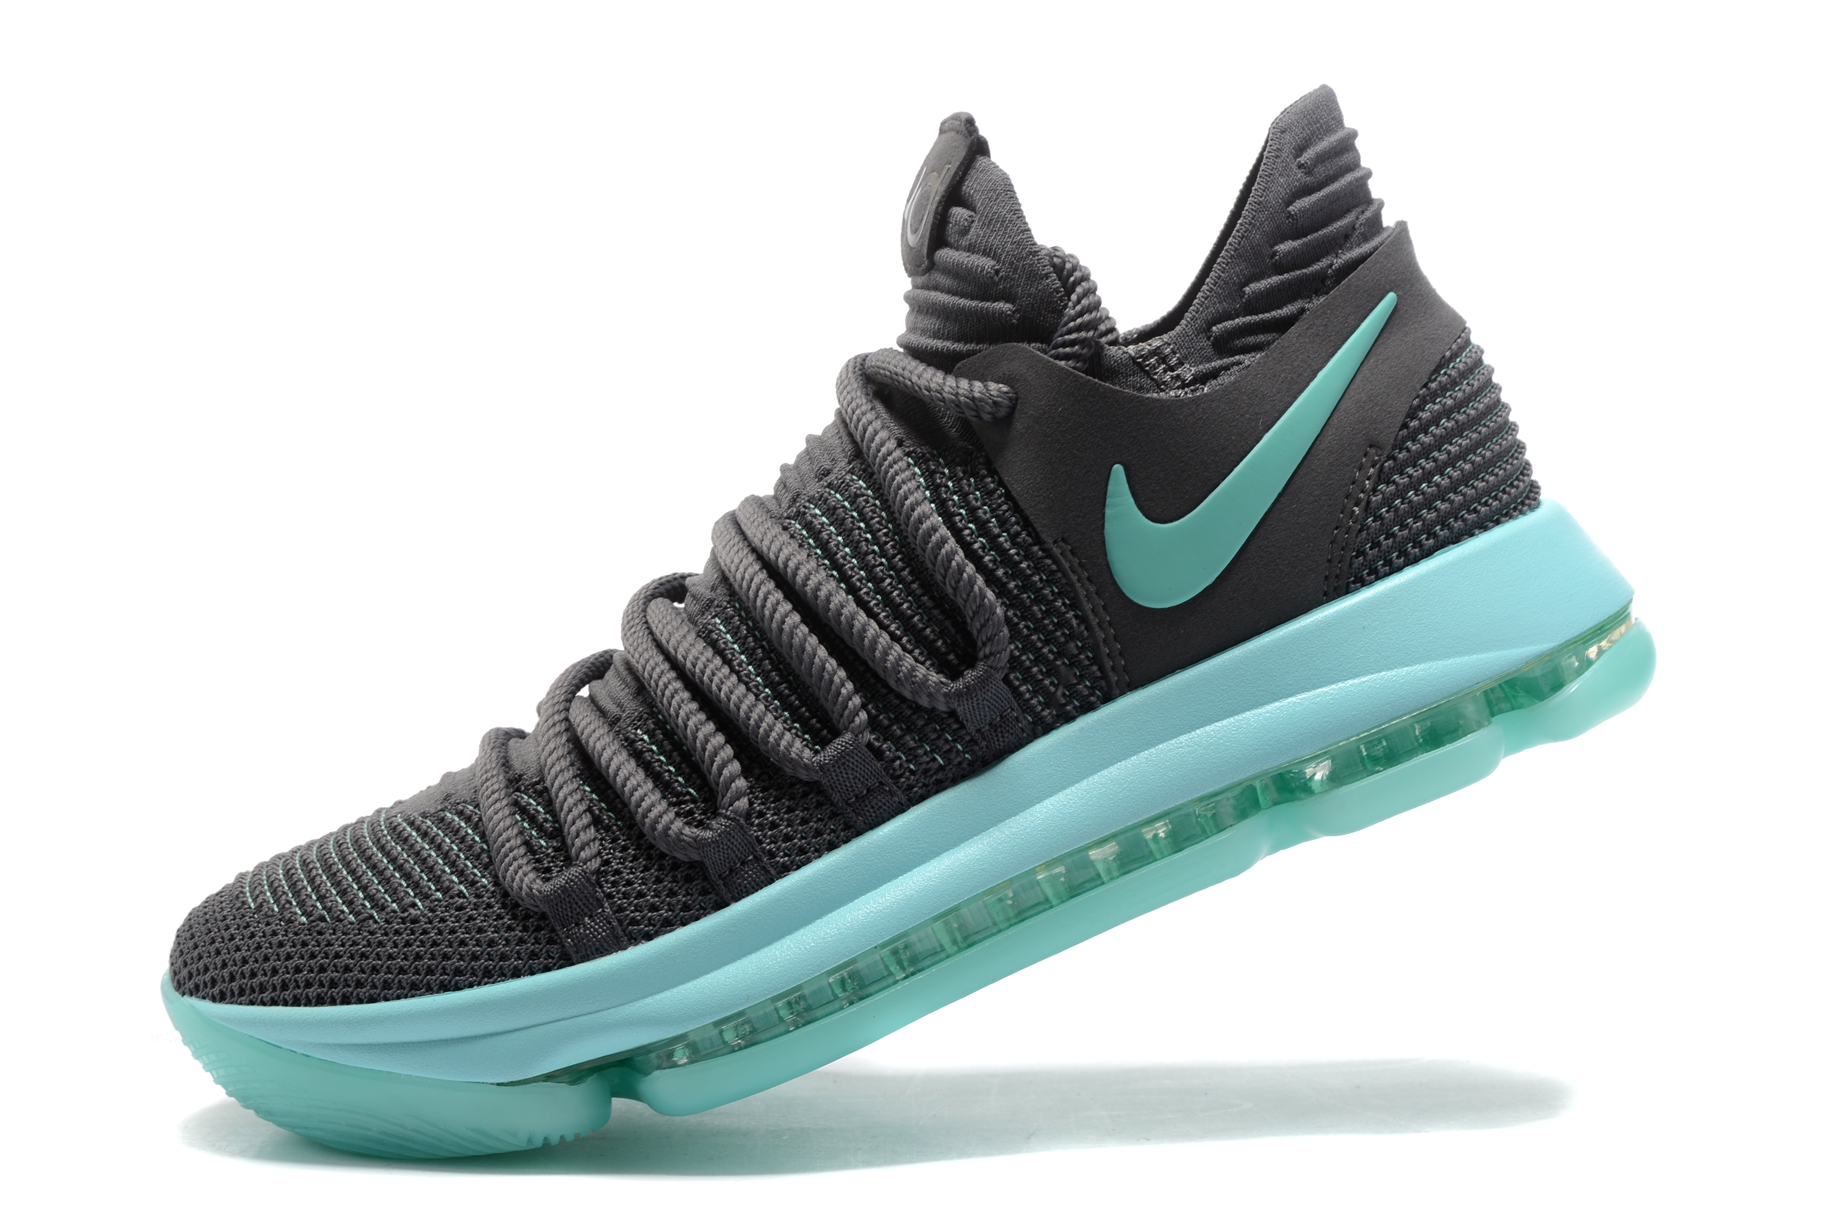 Nike Zoom Grey And Green Nike Zoom Kd X 10 Men Basketball Shoes Wolf Grey Green